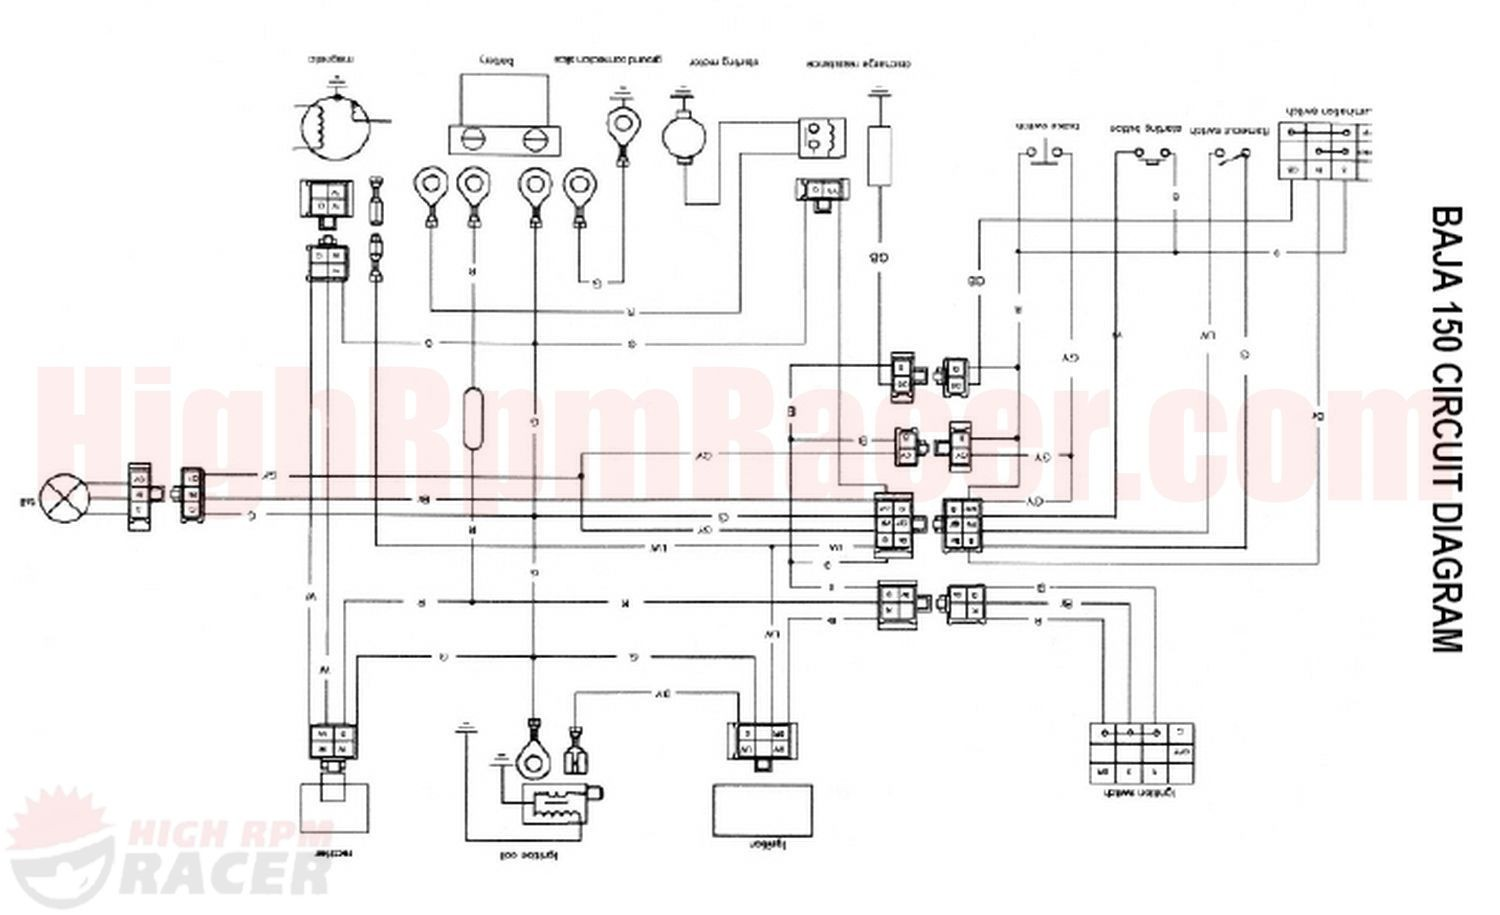 Eton Viper 50 Wiring Diagram Movies In Theaters Wire Data Schema \u2022  Eton 50Cc ATV Wiring Diagram Eton Viper 50 Parts Diagram